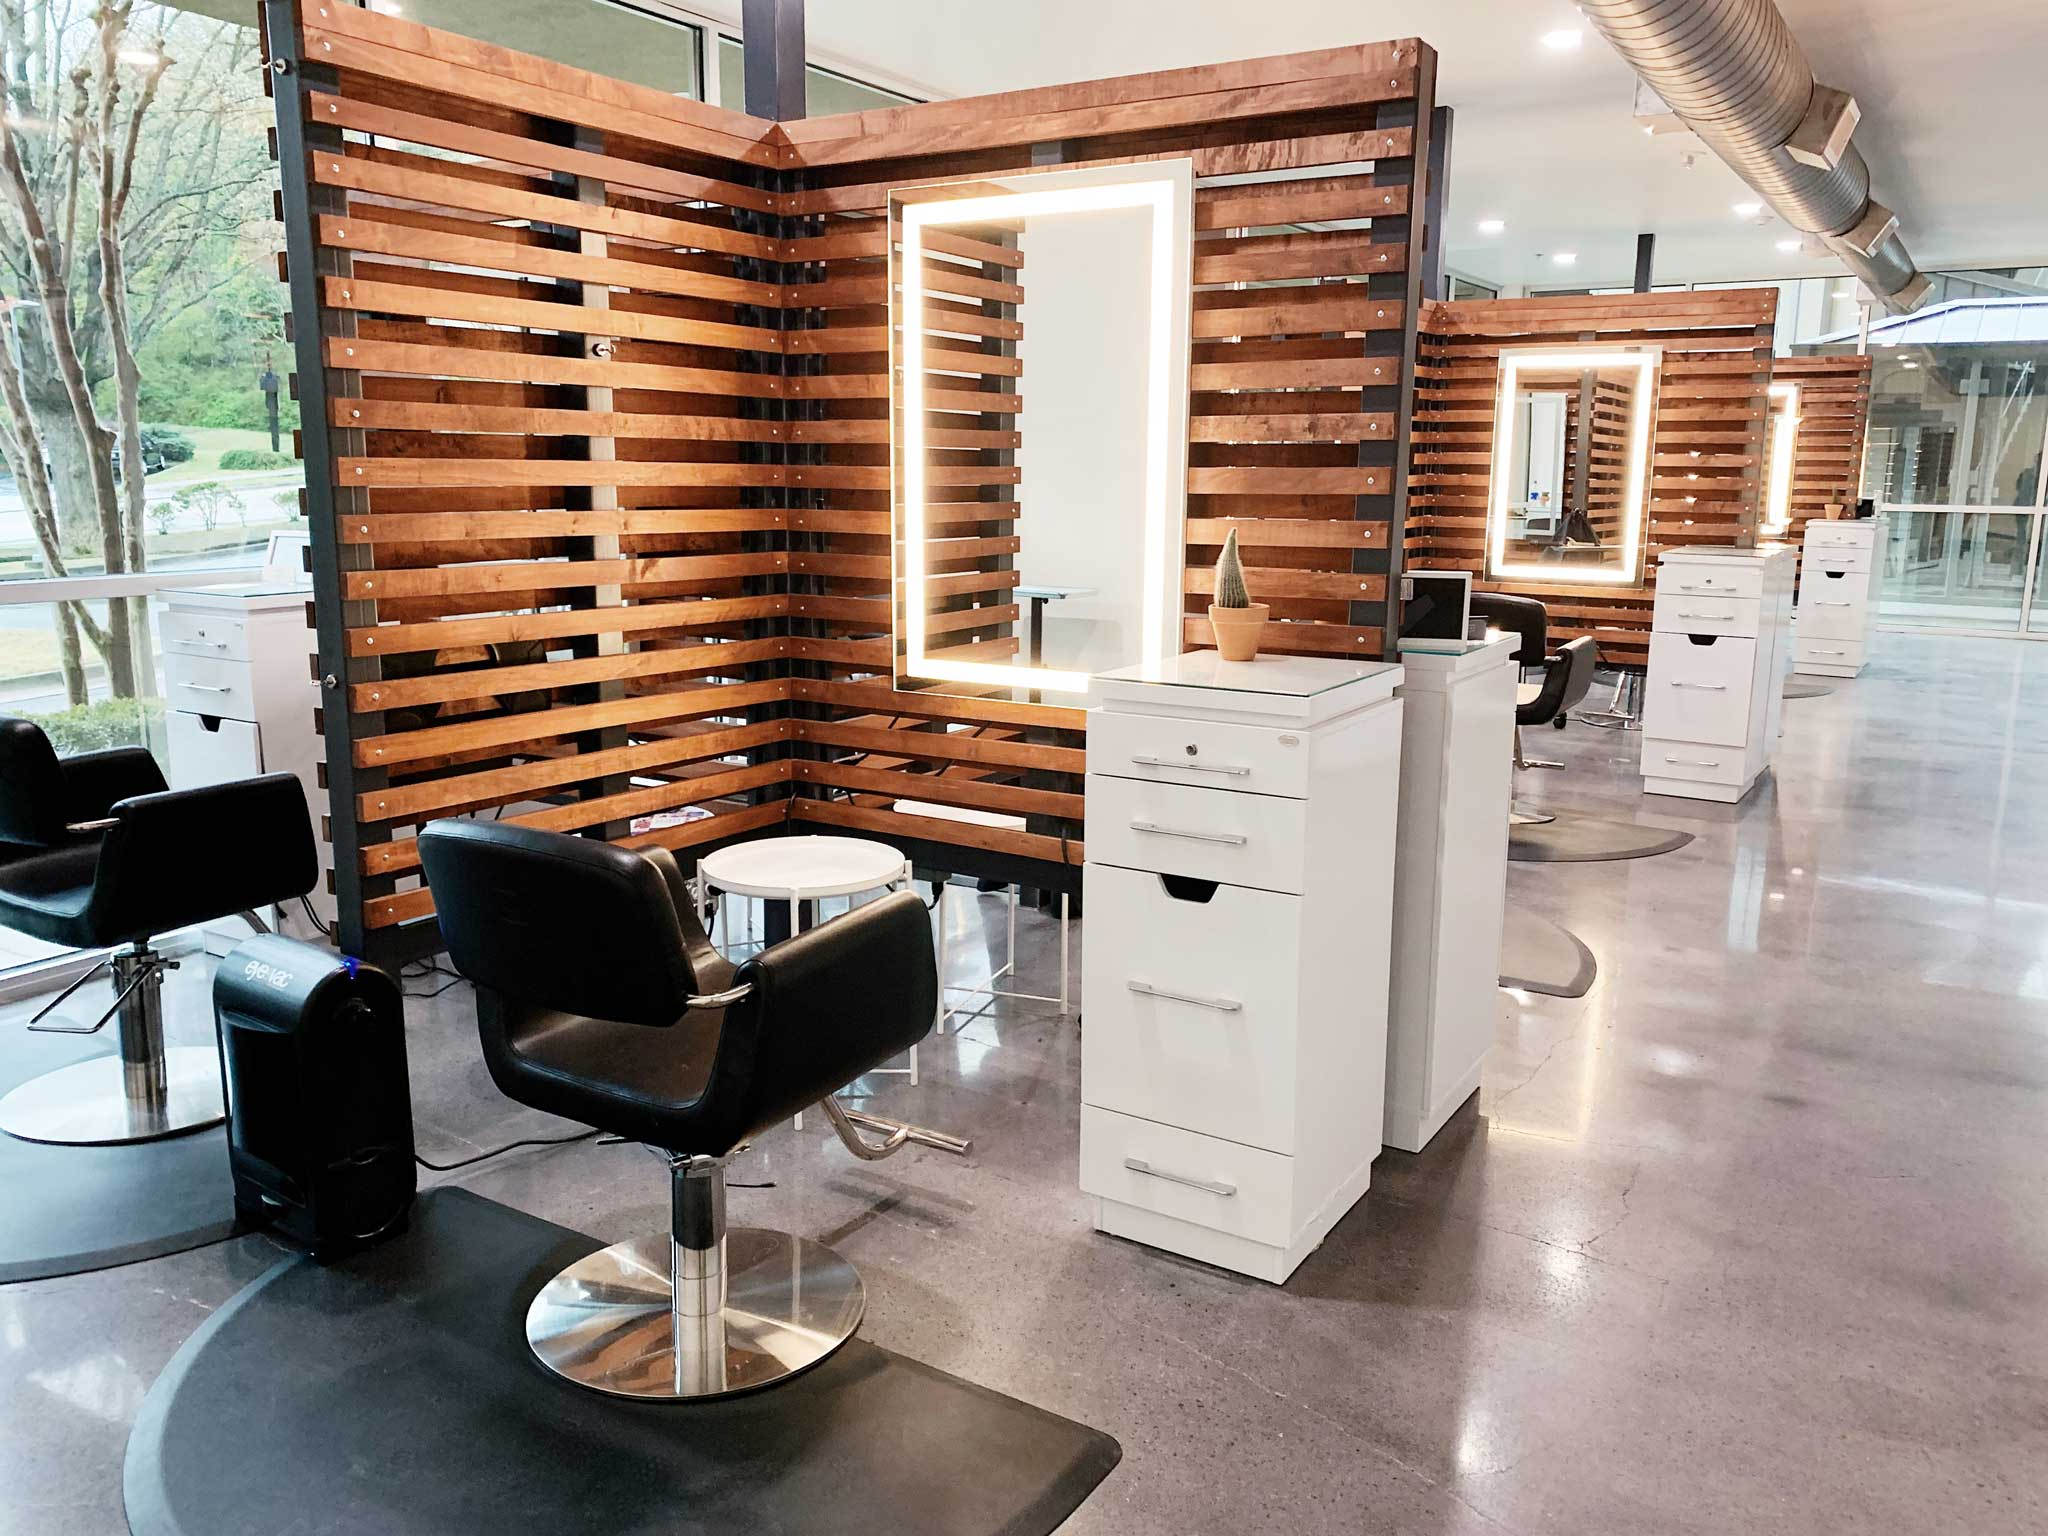 Where to Get Salon Equipment